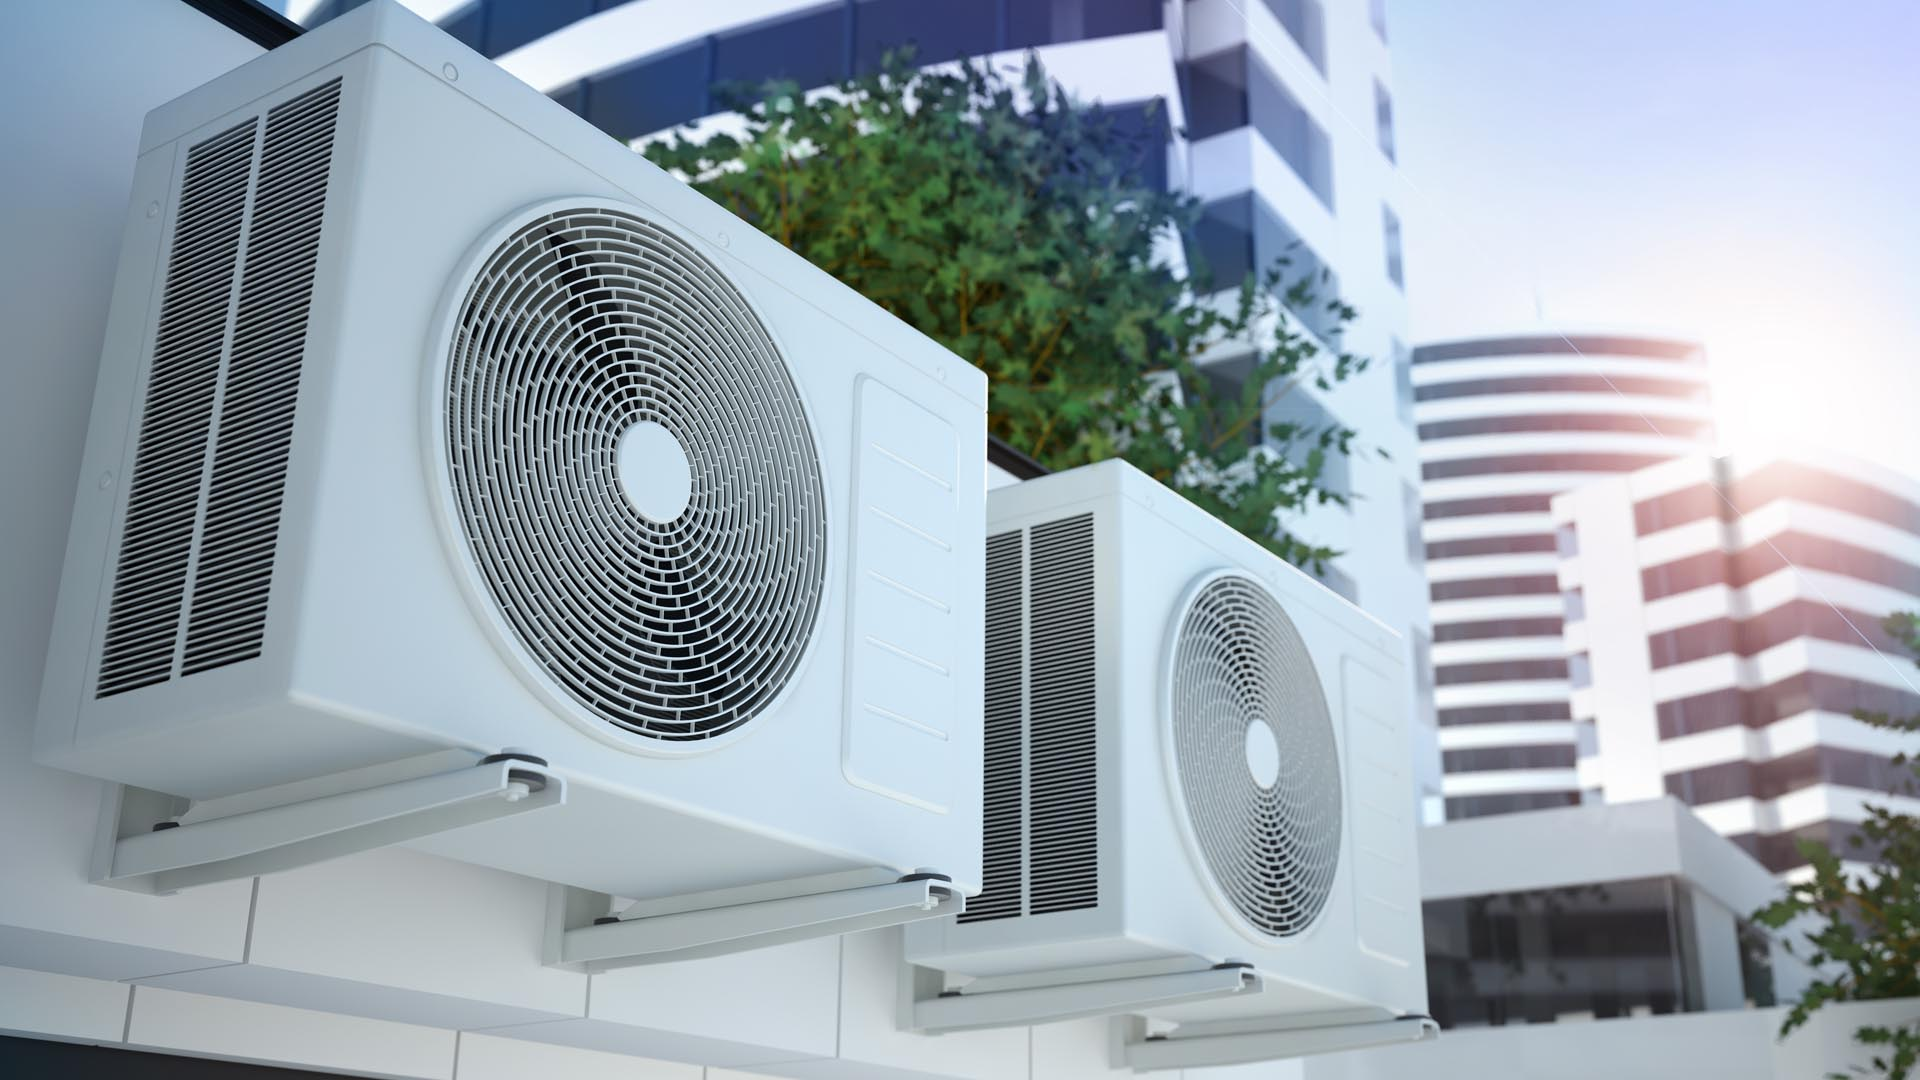 Adams Air Condition And Heating Services, LLC HVAC Services